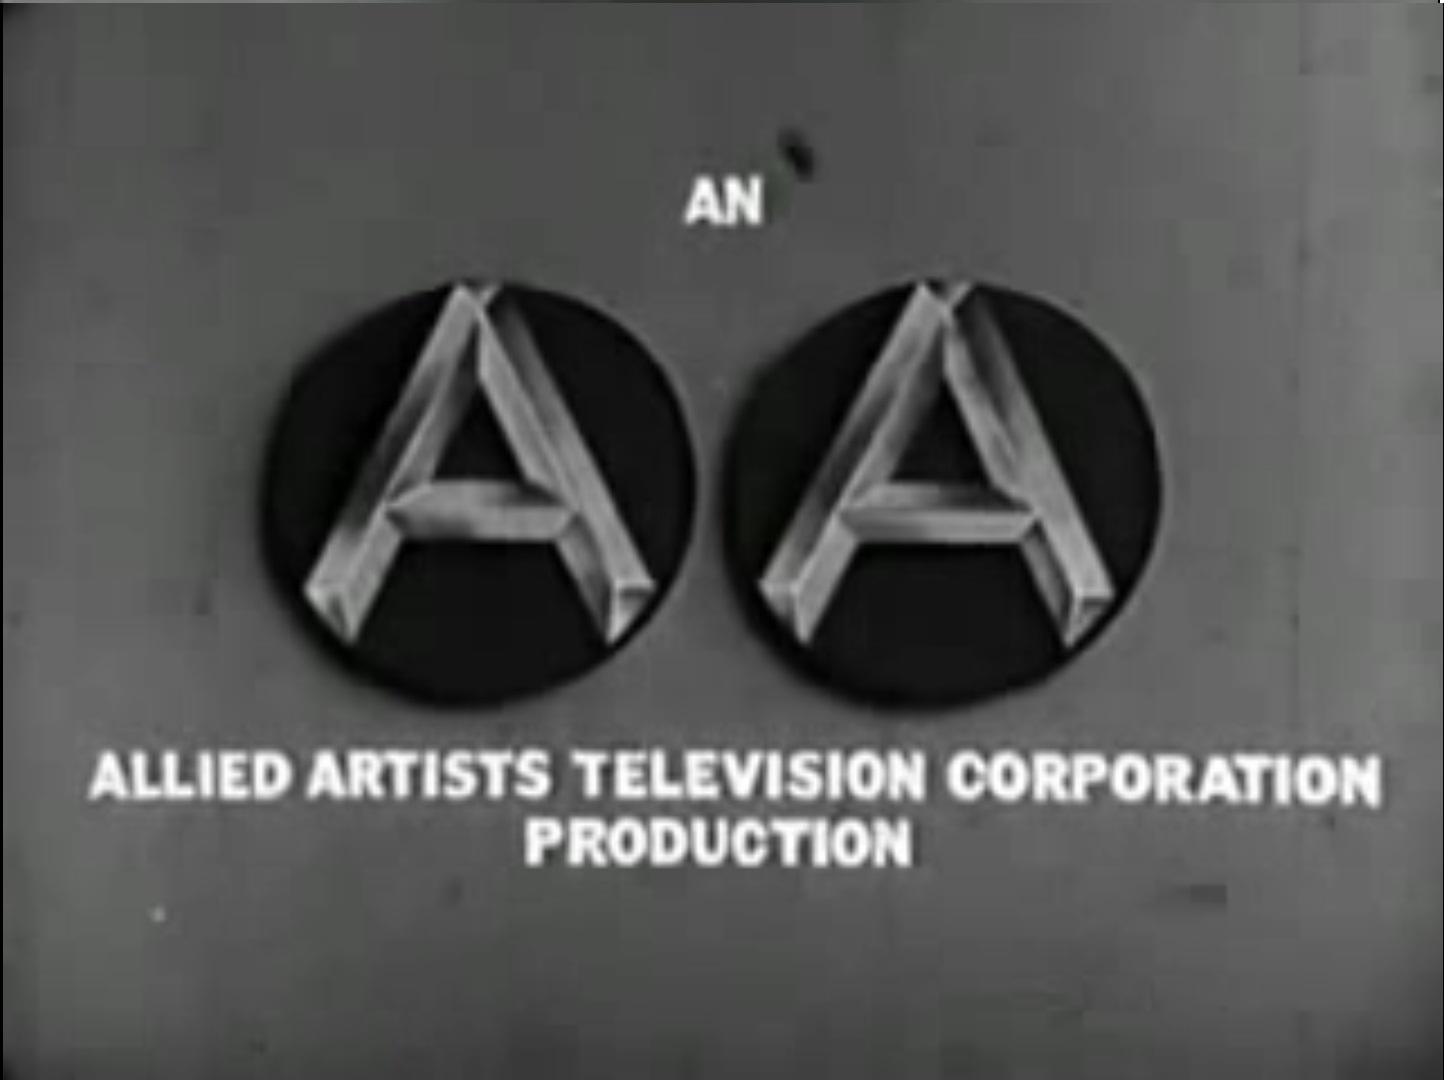 Allied Artists Television Corporation